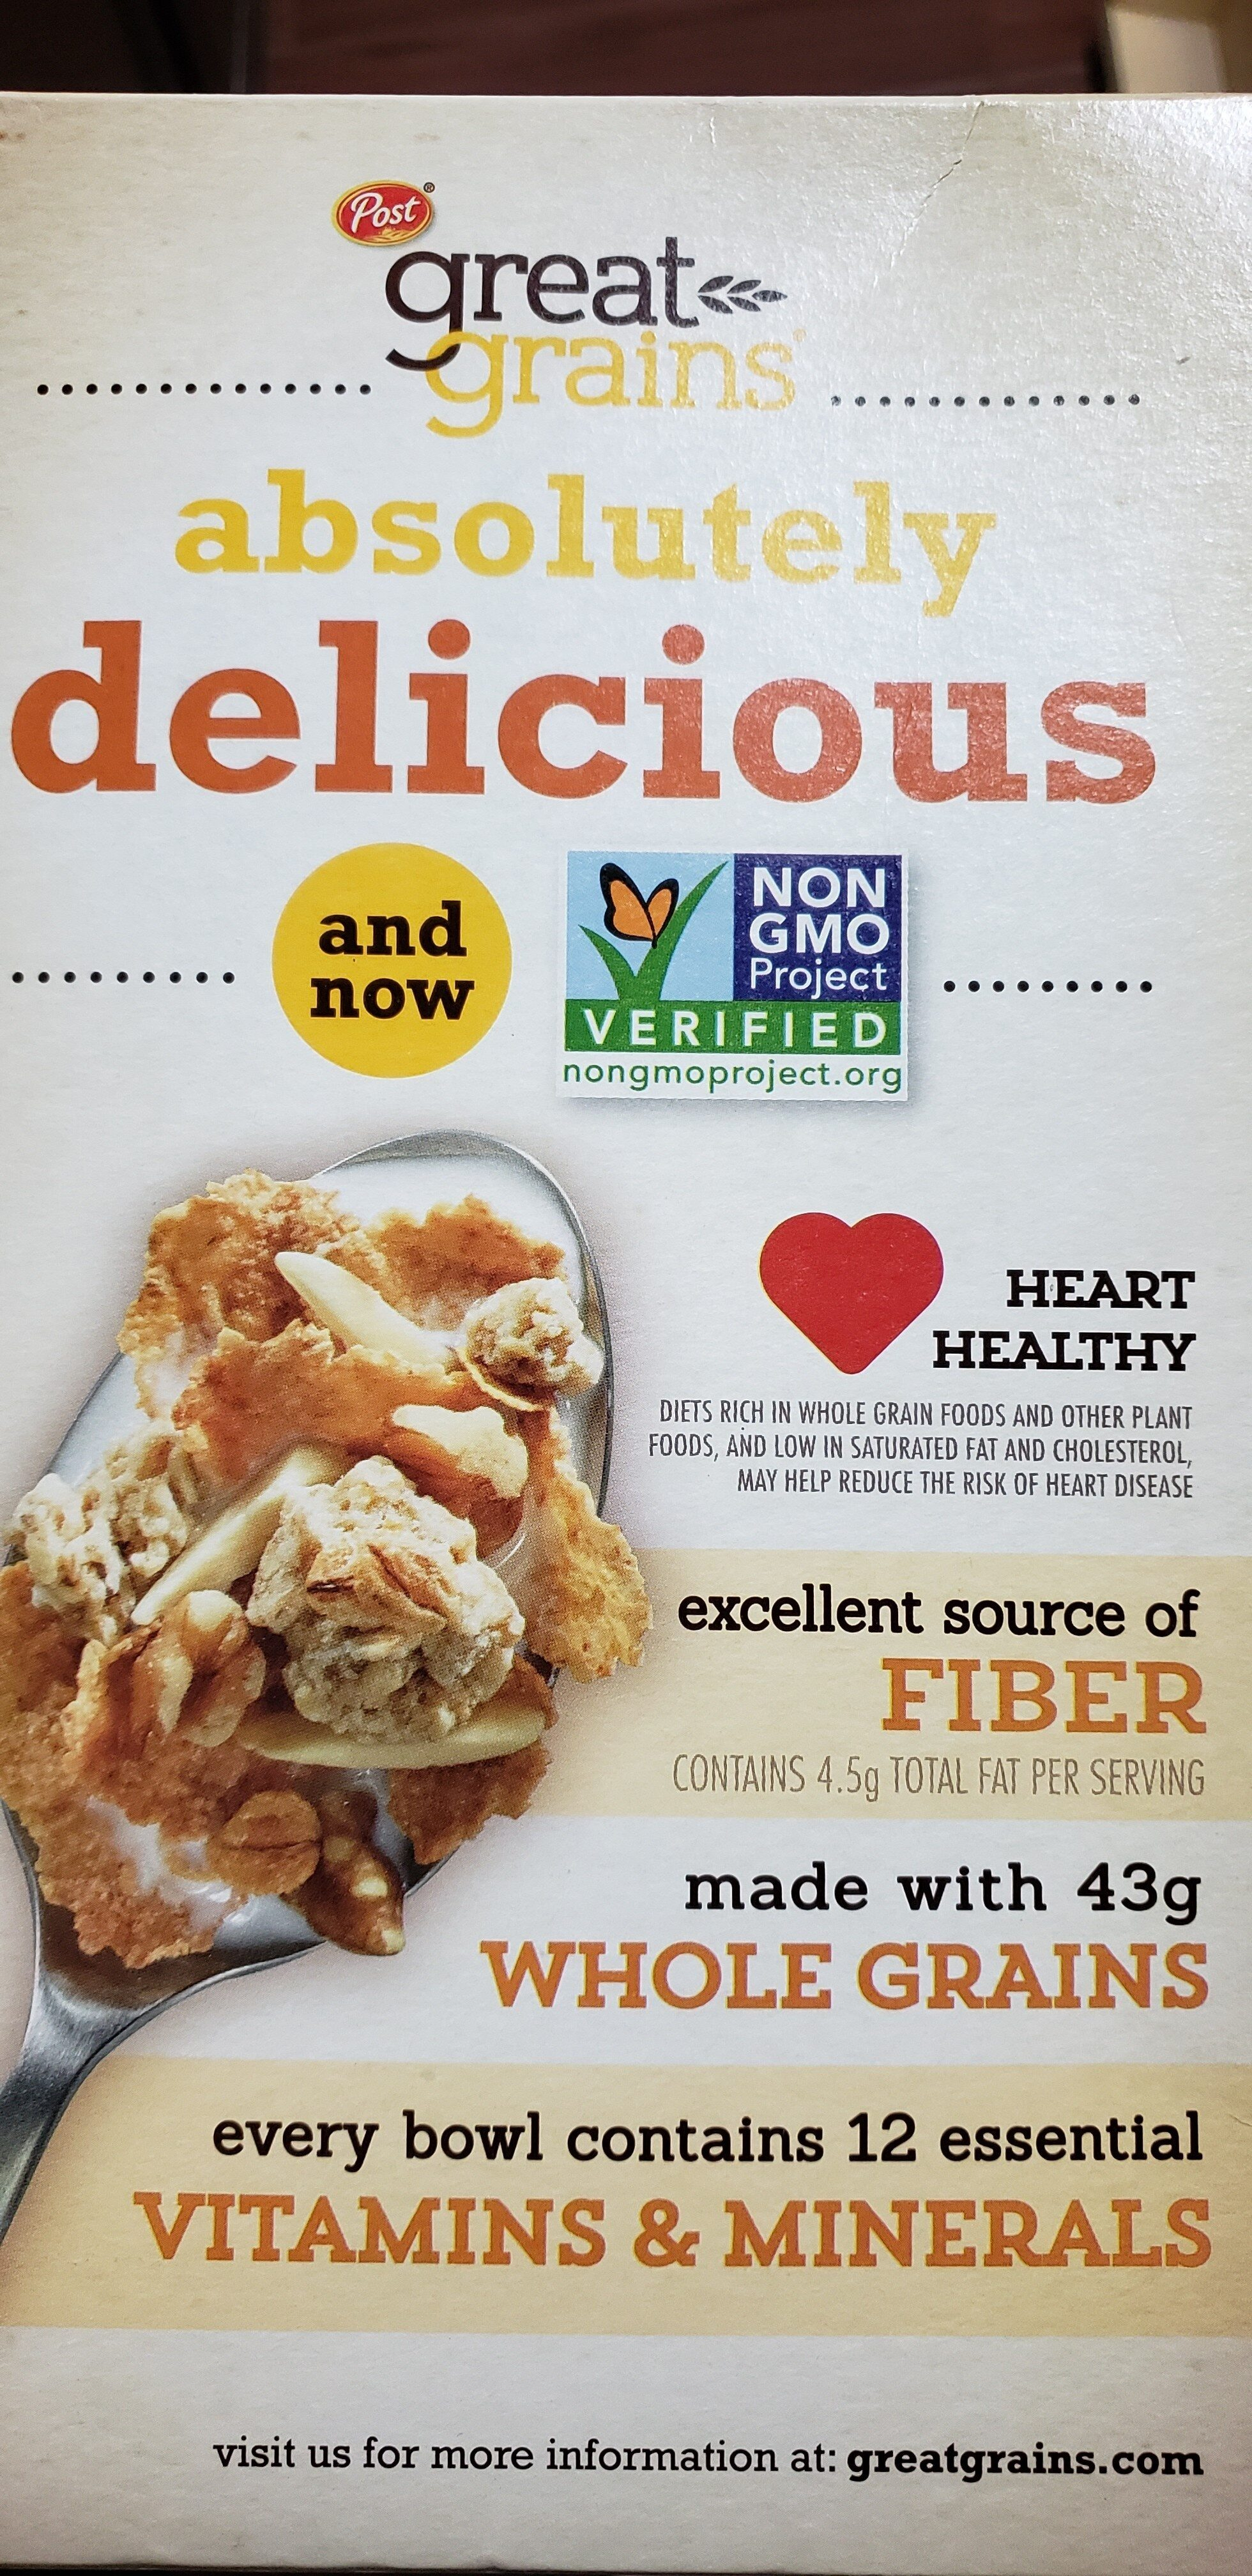 Great Grains, Whole Grain Cereal, Banana Nut Crunch - Product